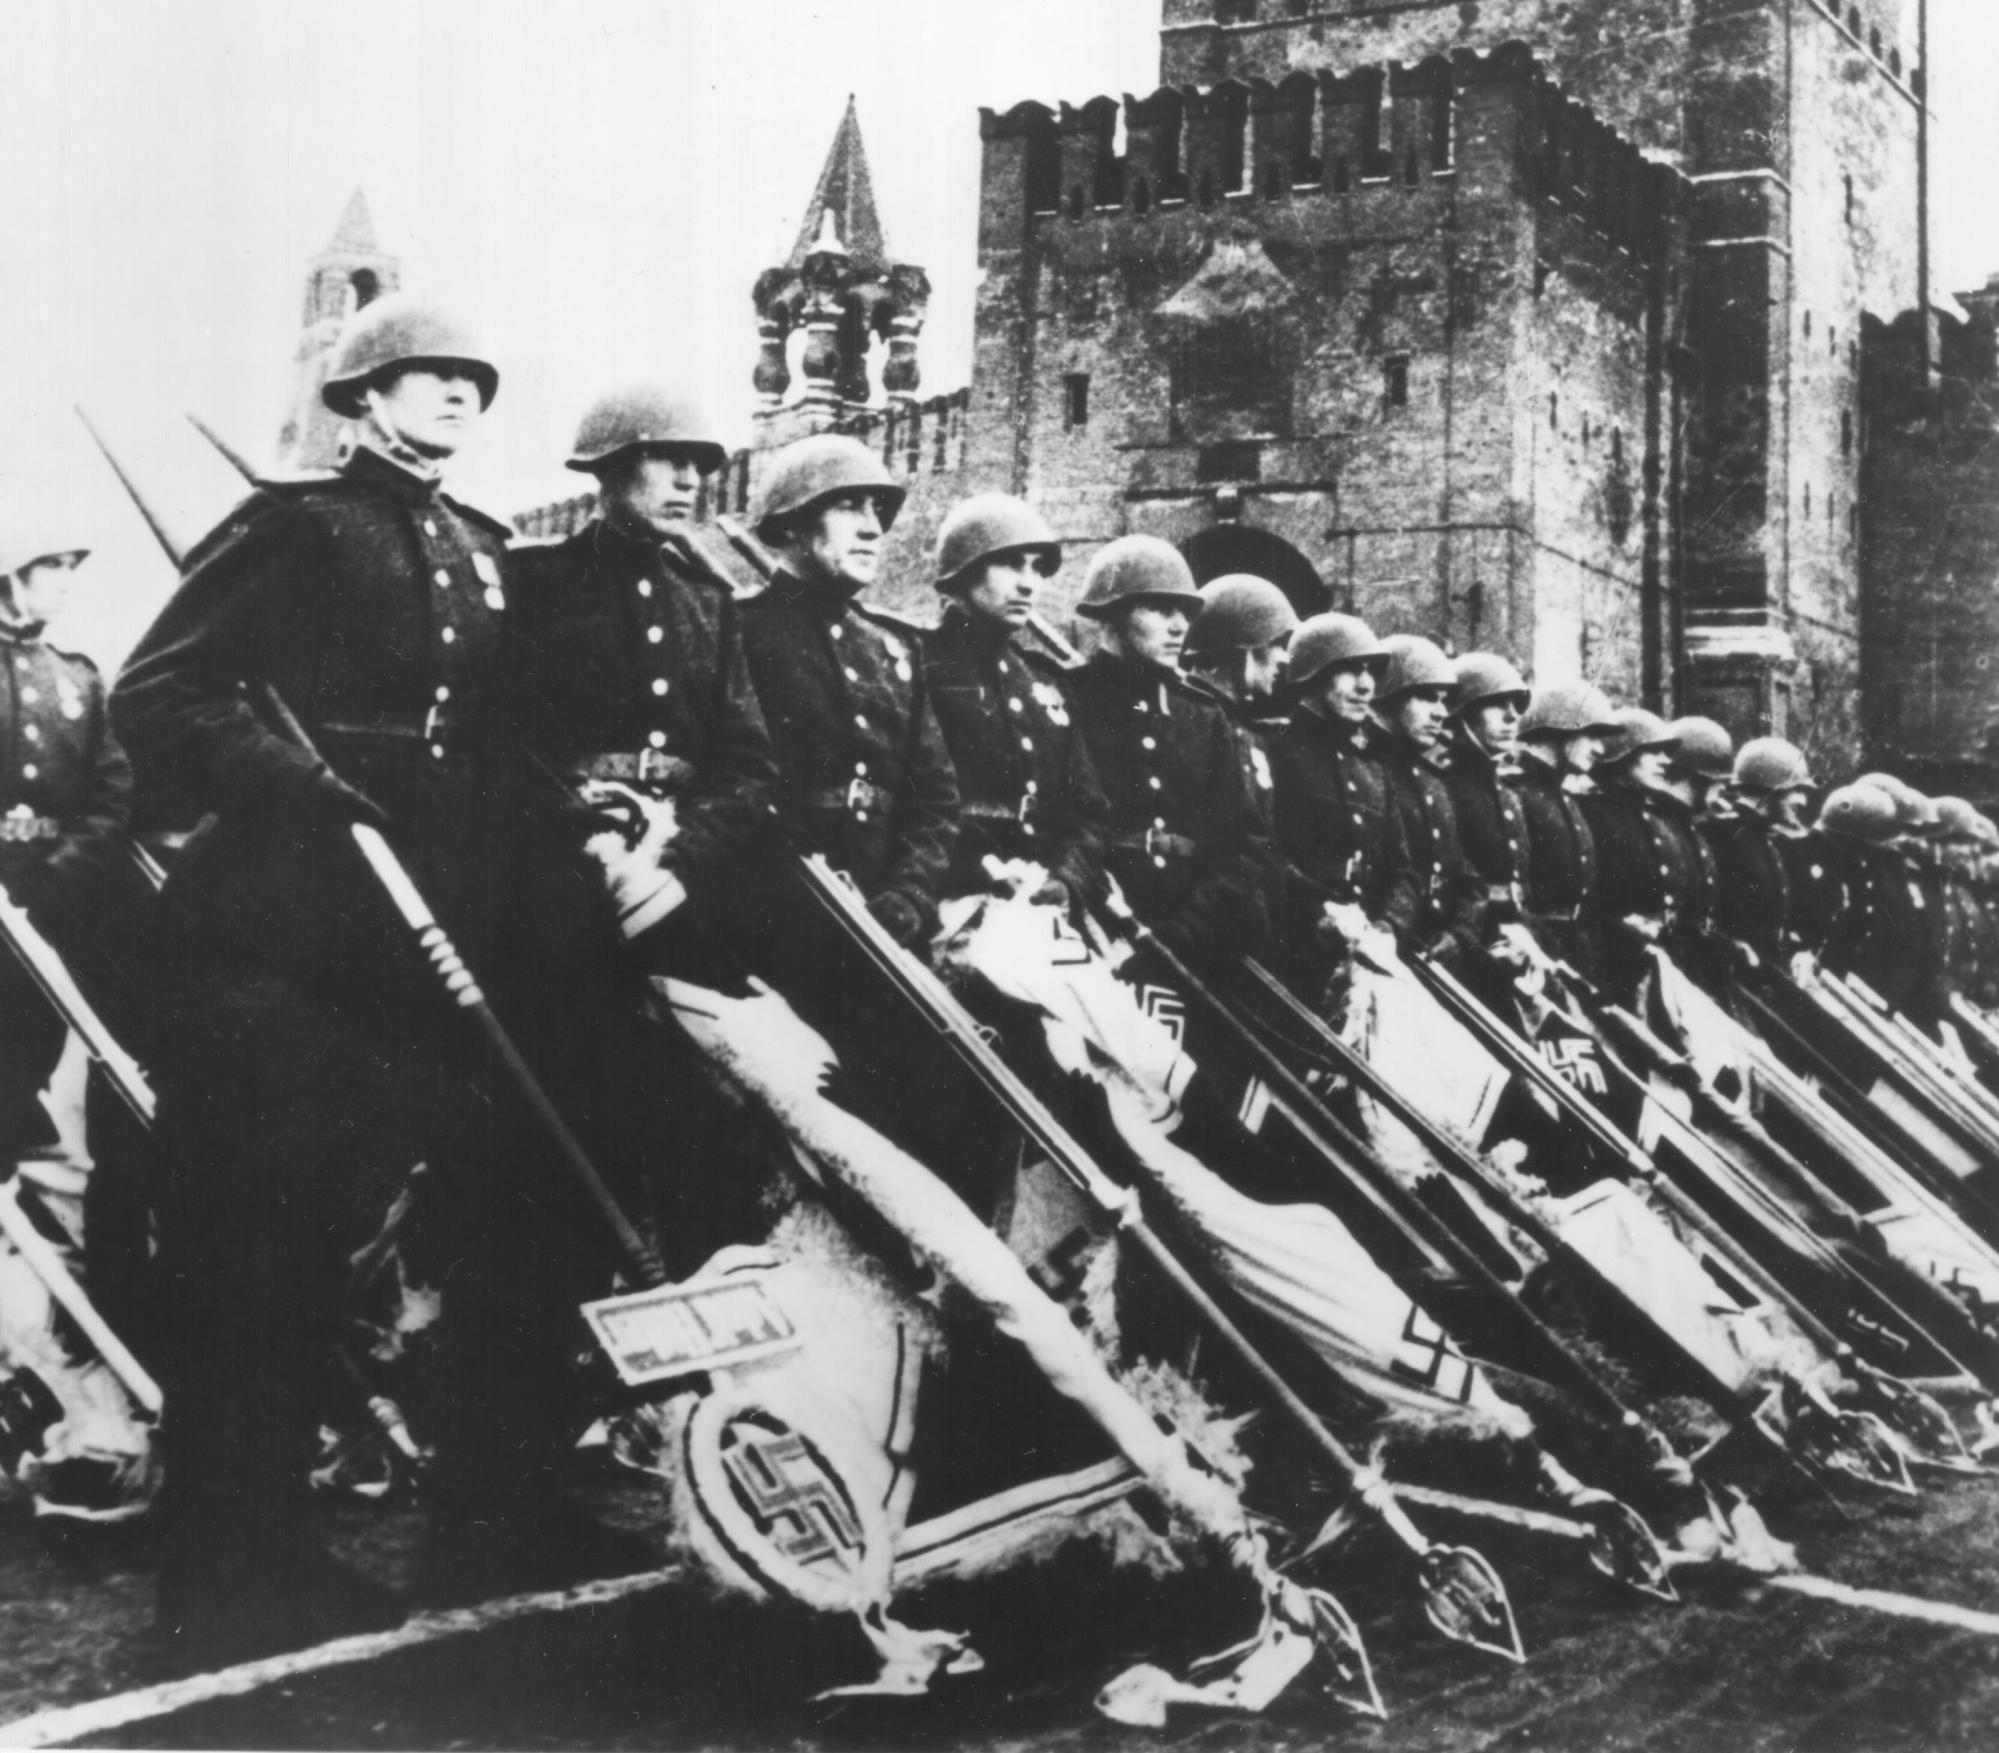 Following the German surrender...